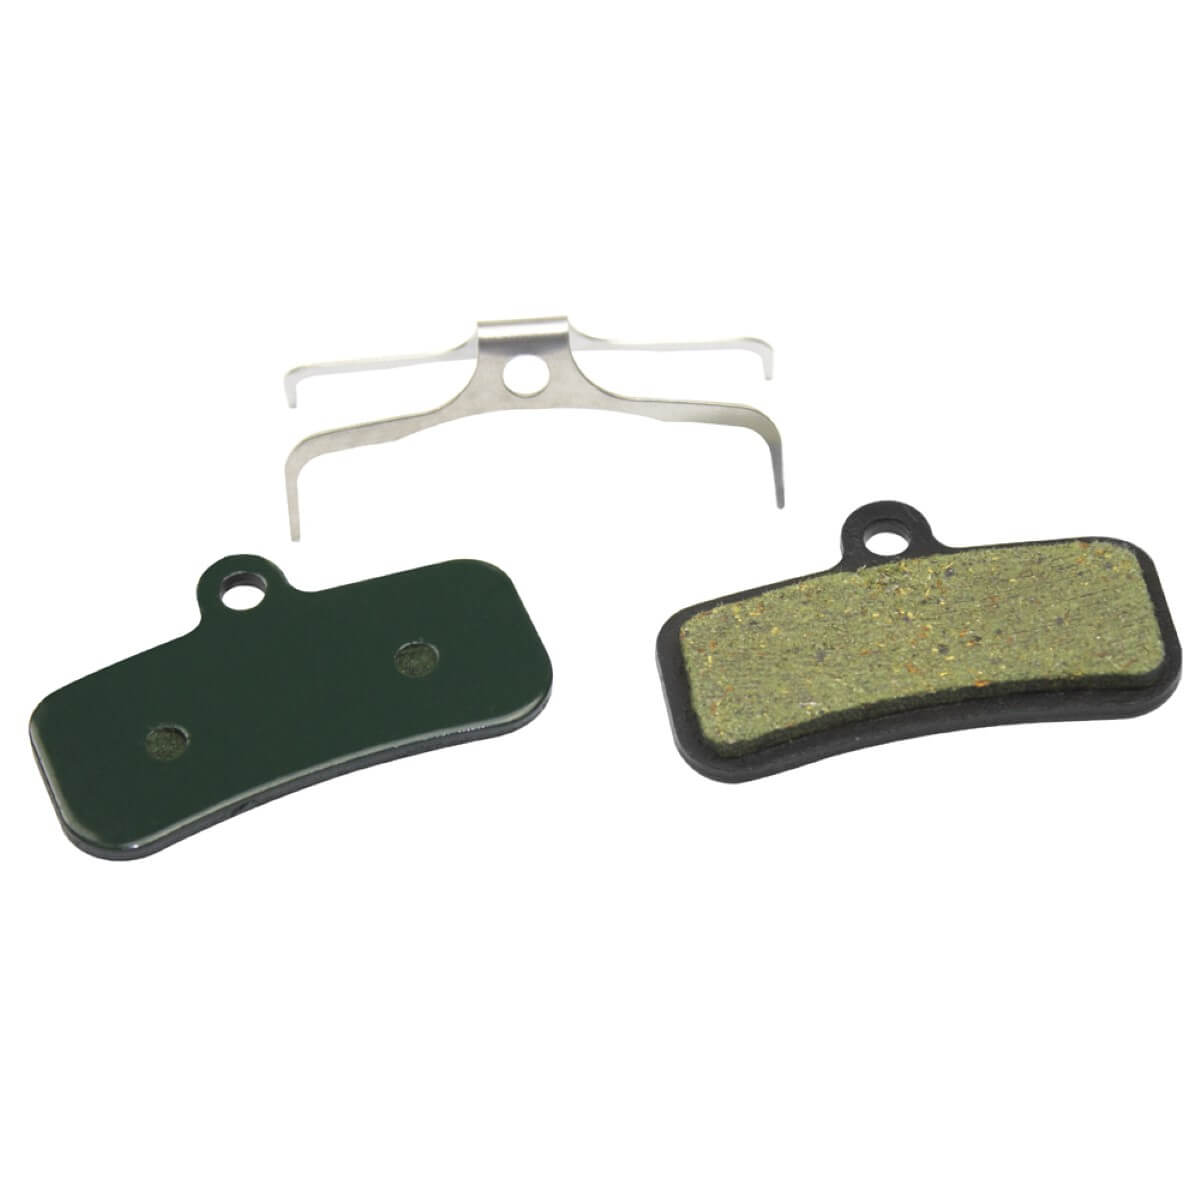 Marwi Union DBP-43E E-bike Disk Brake Pads with KEVLAR for Shimano Saint